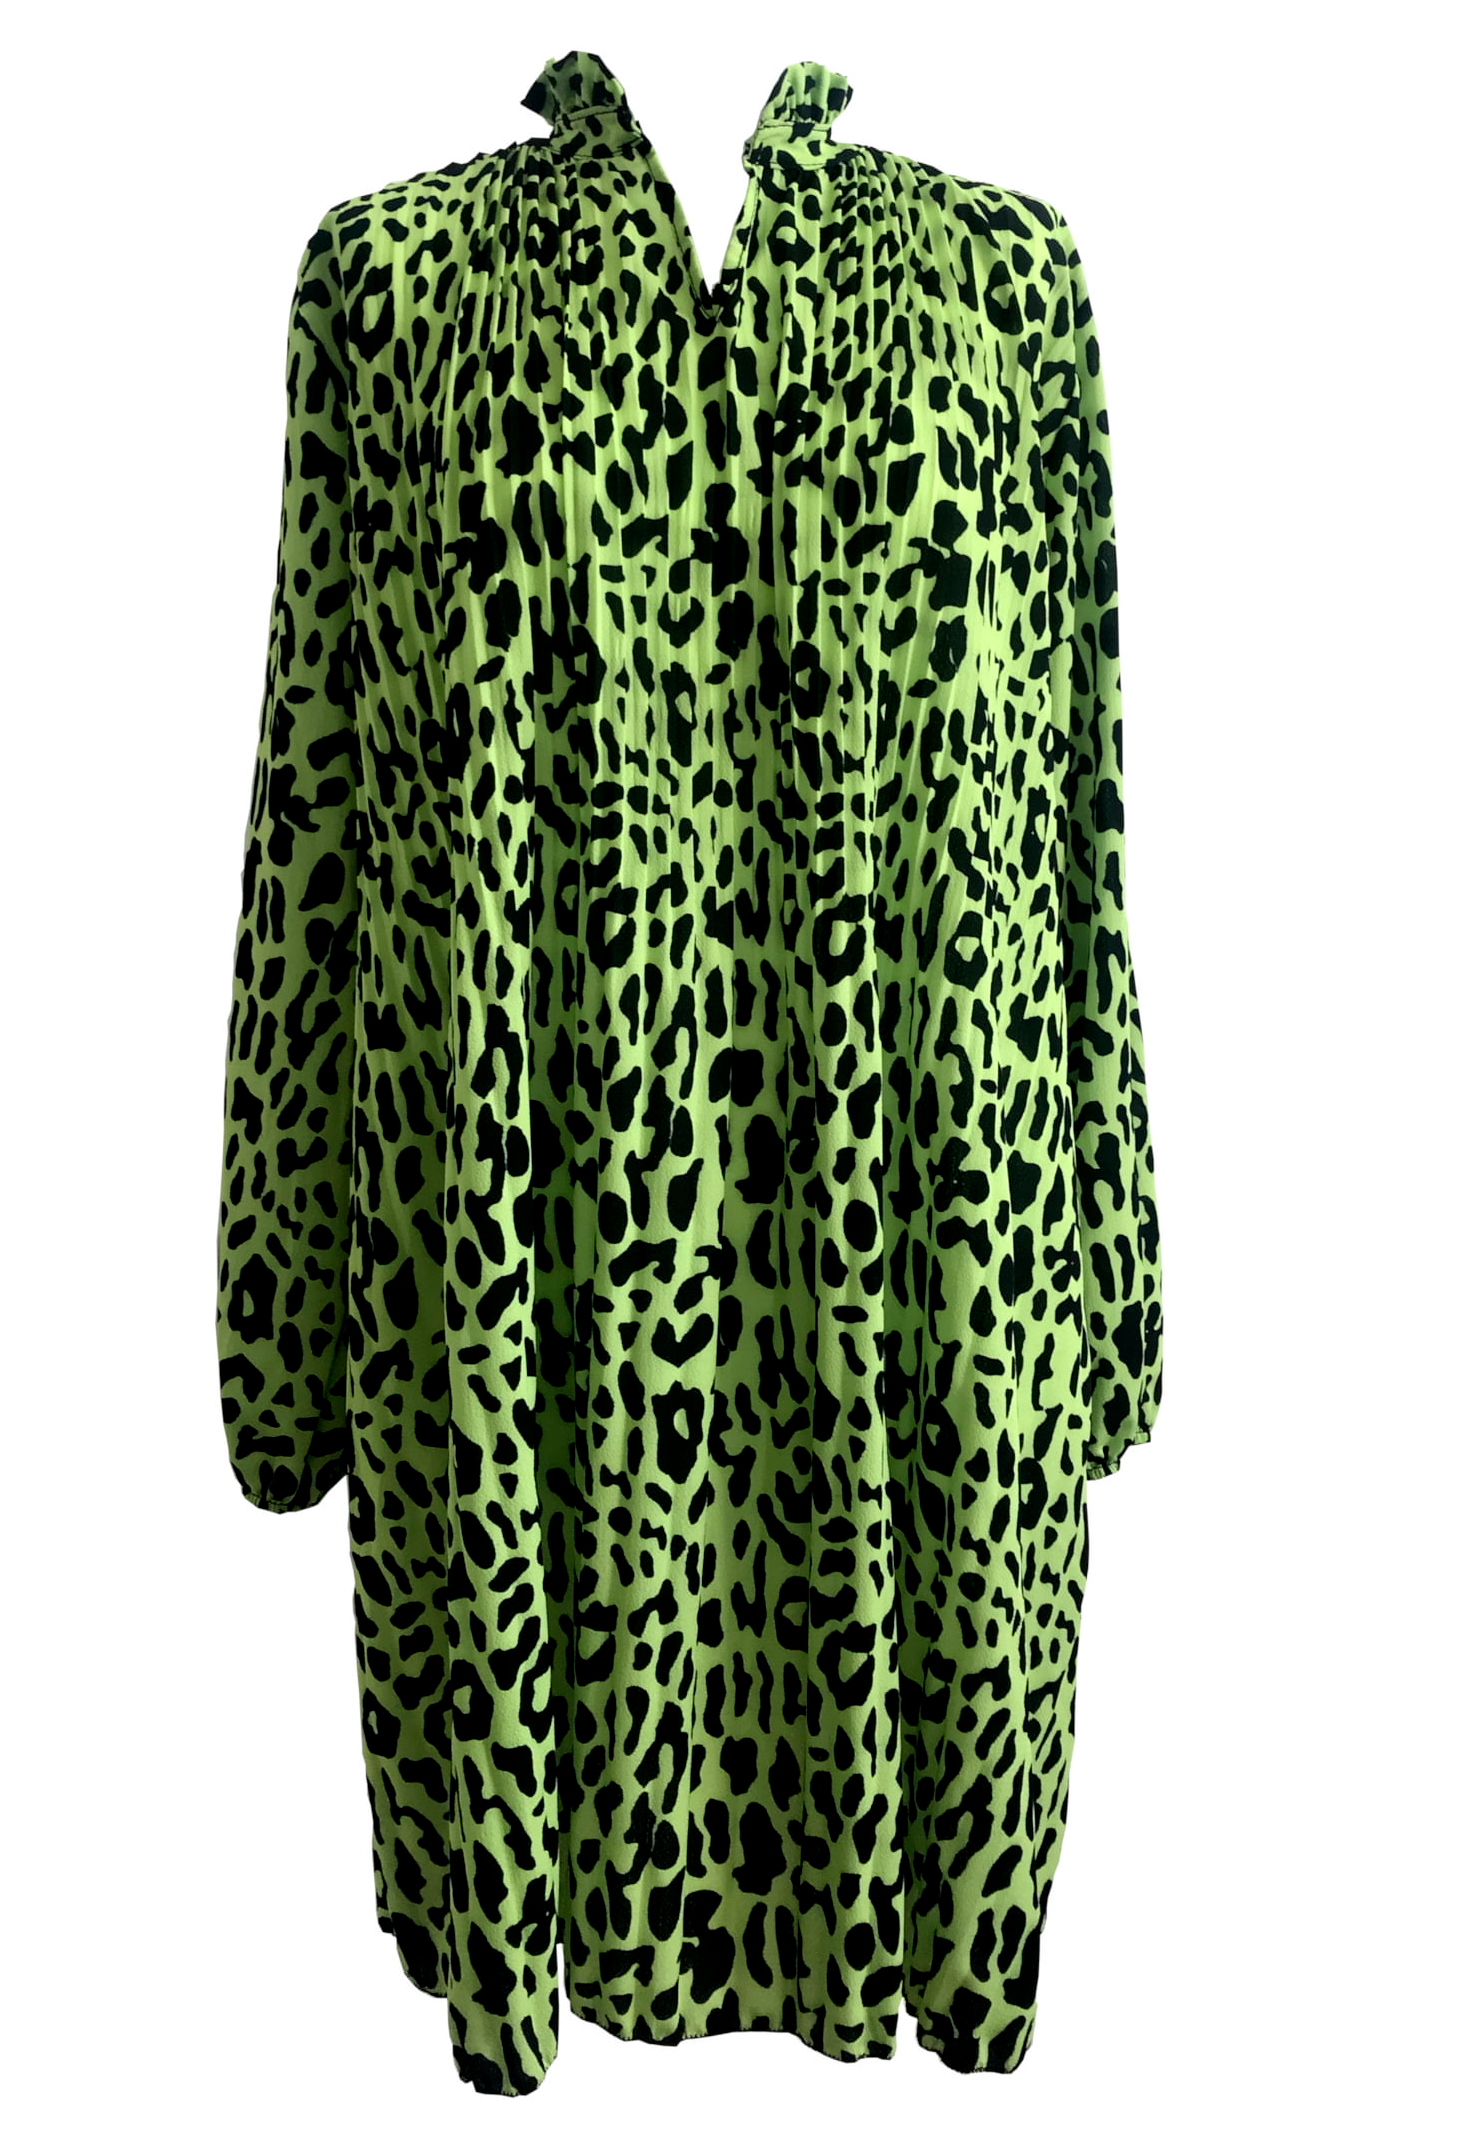 Green Animal Print Dress